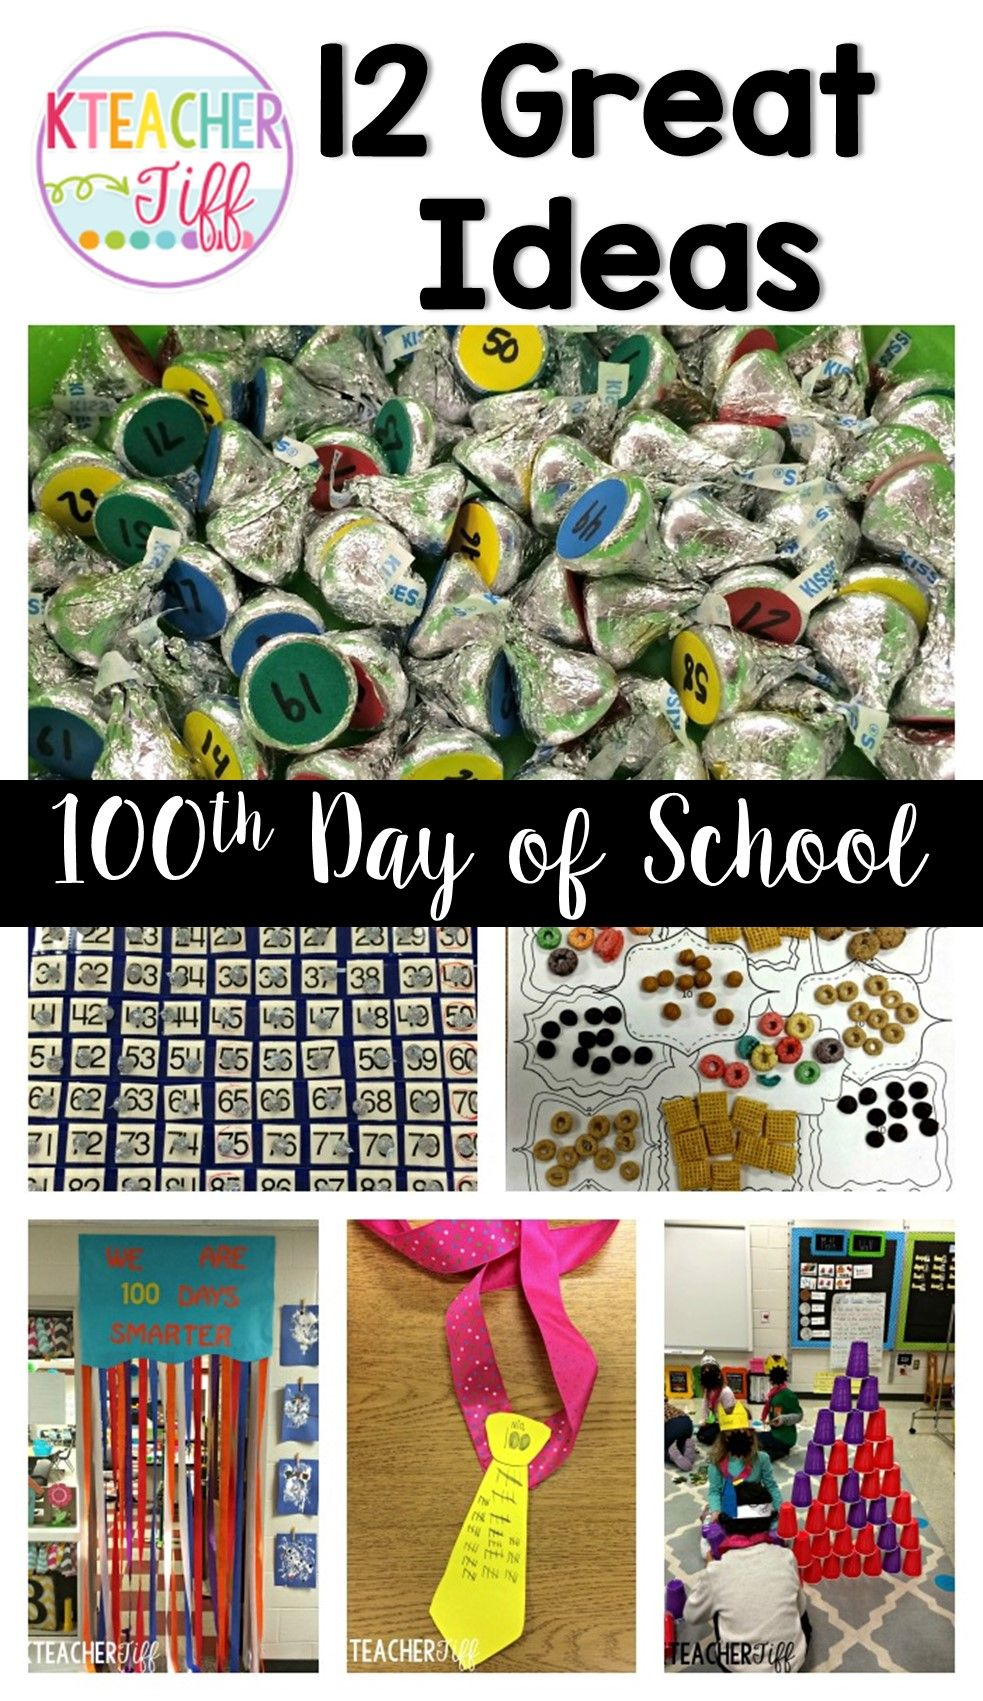 12 great ideas and activities for the 100th day of school in kindergarten. I can't wait to try number 12!